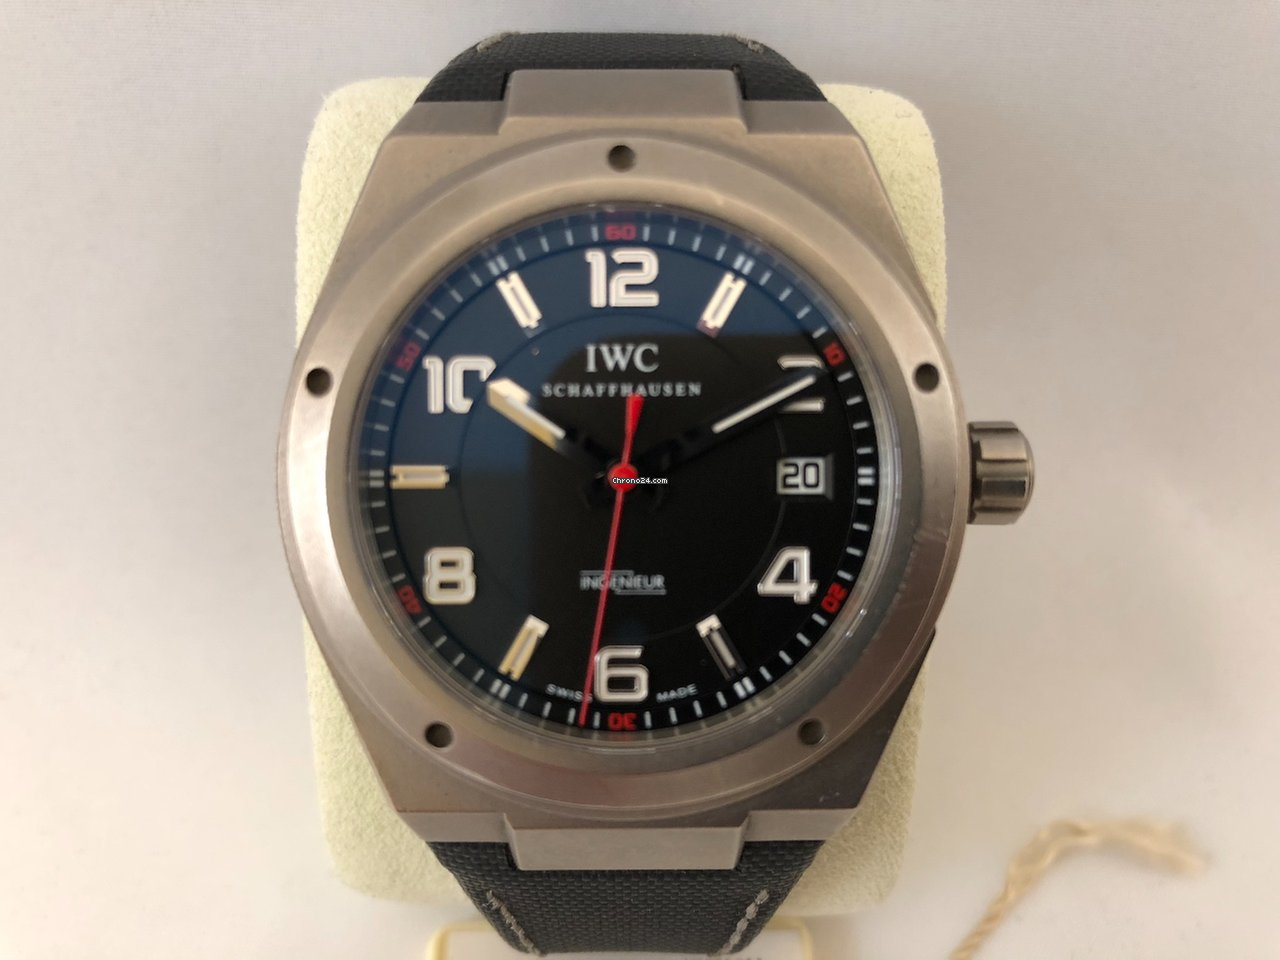 iwc ingenieur mercedes amg for 2 677 for sale from a trusted seller on chrono24. Black Bedroom Furniture Sets. Home Design Ideas